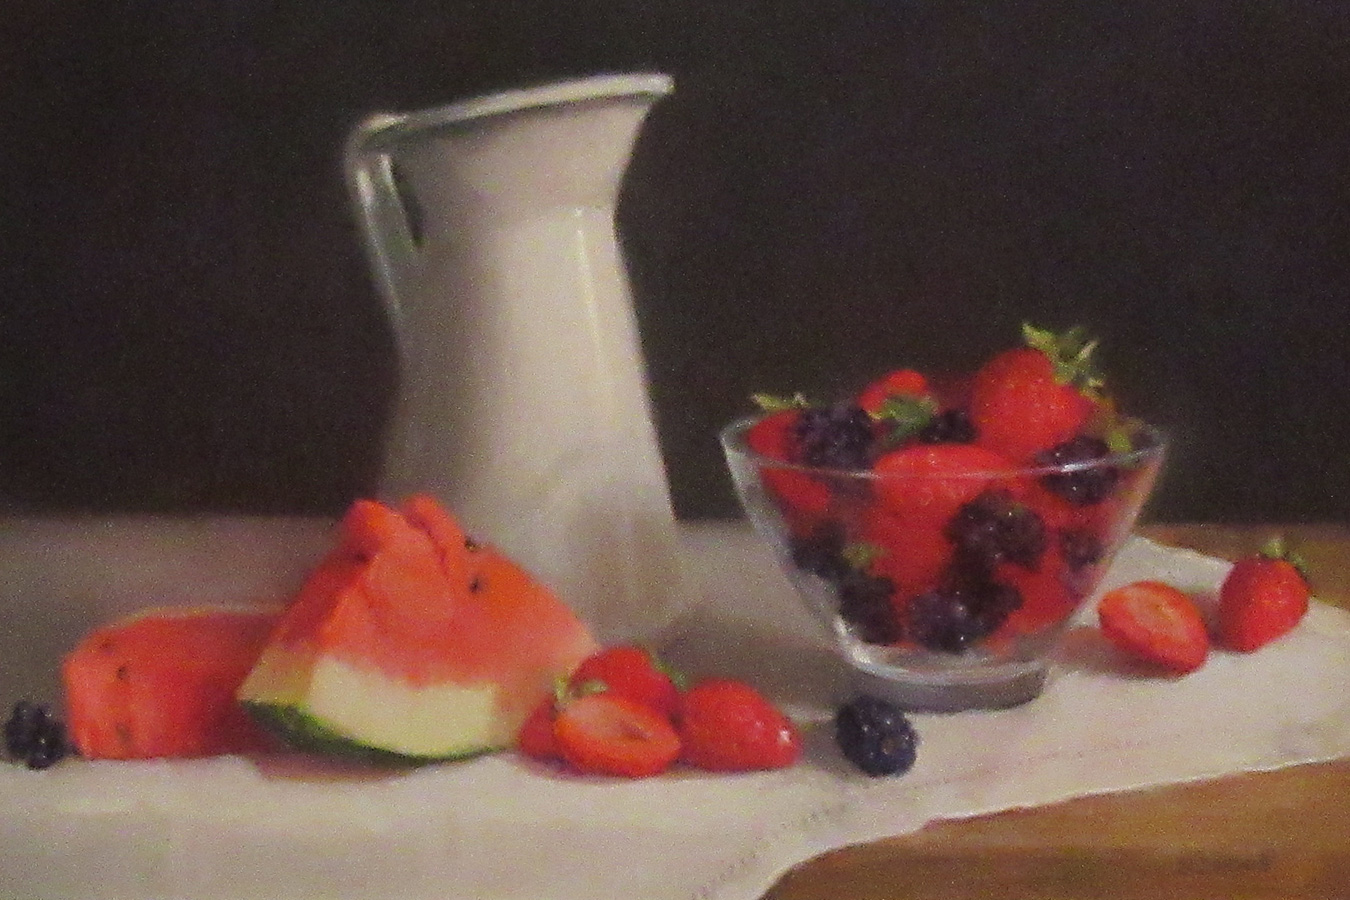 Pitcher with Strawberries and Melon by  Liz Balkwill